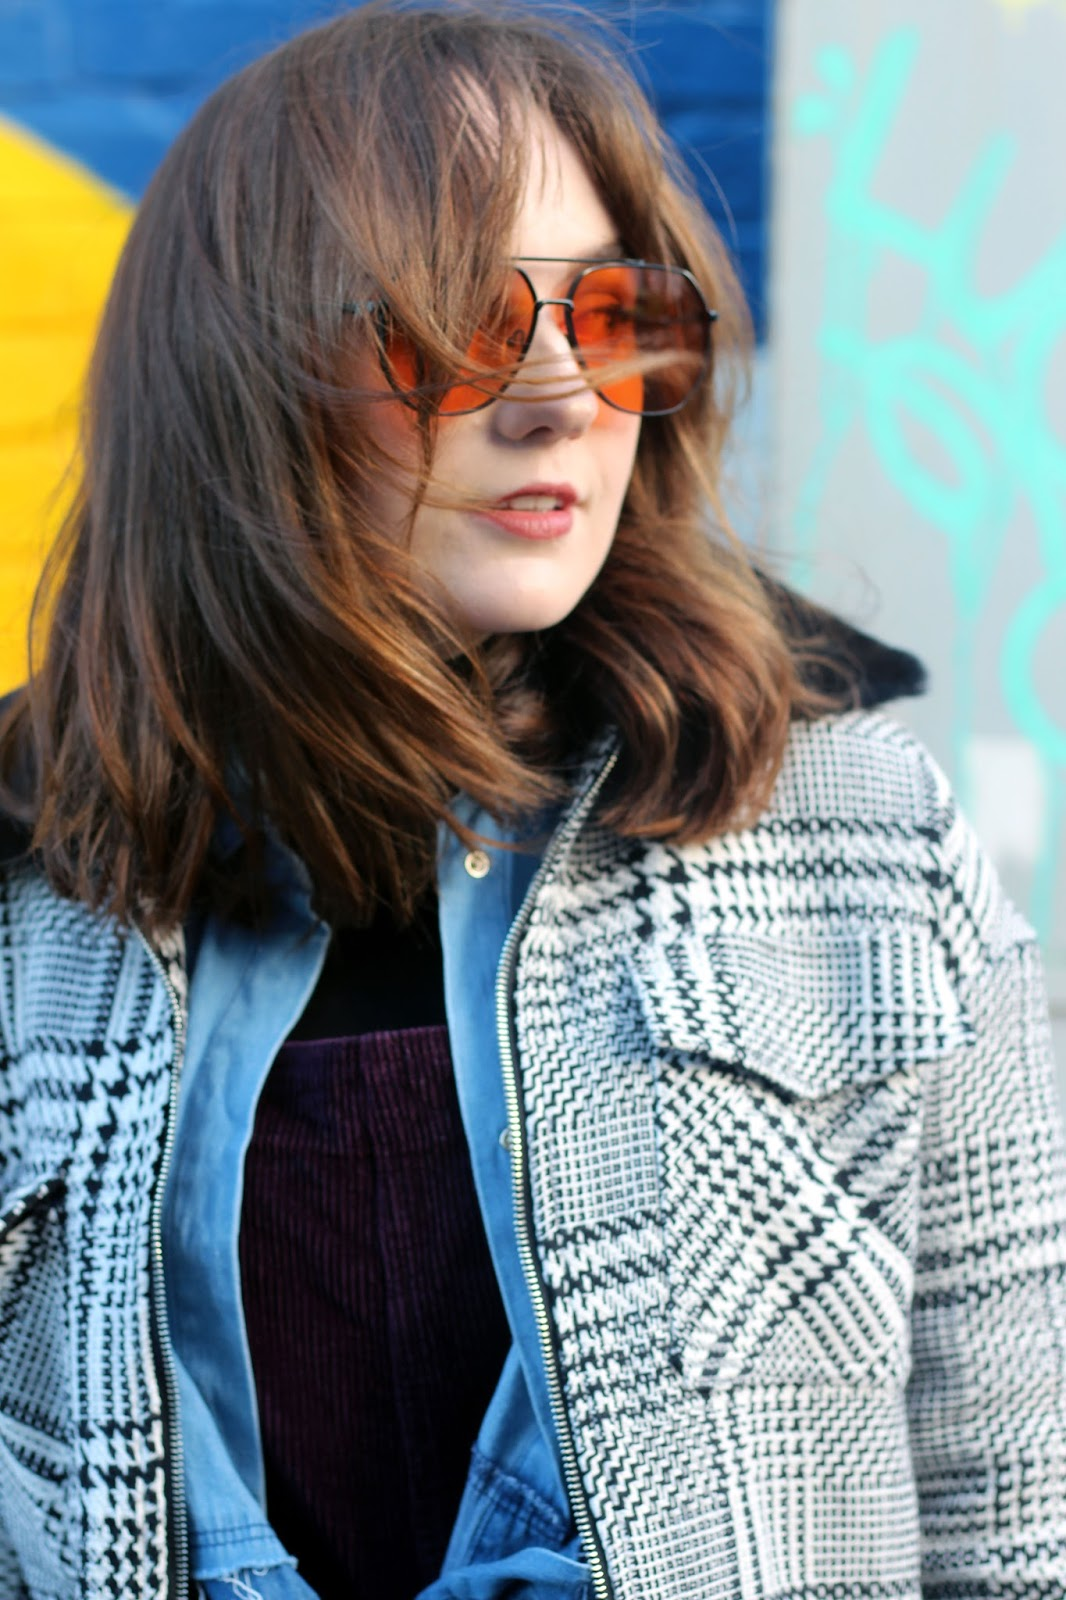 Liverpool fashion blogger portrait with orange tint aviator 70s style sunglasses from ASOS